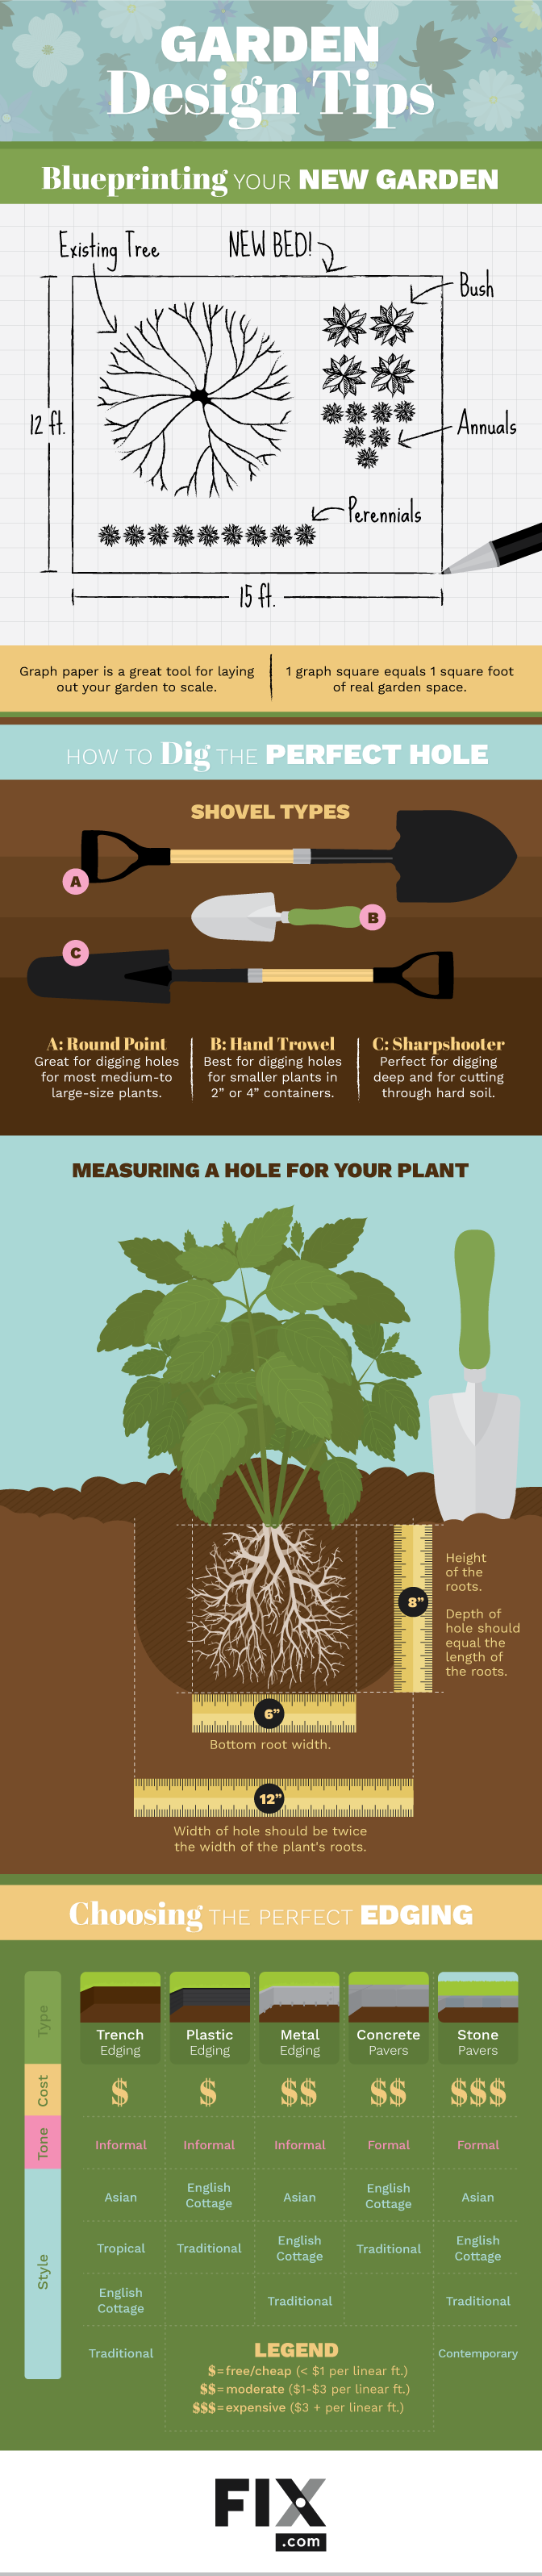 Garden Design Tips #Infographic